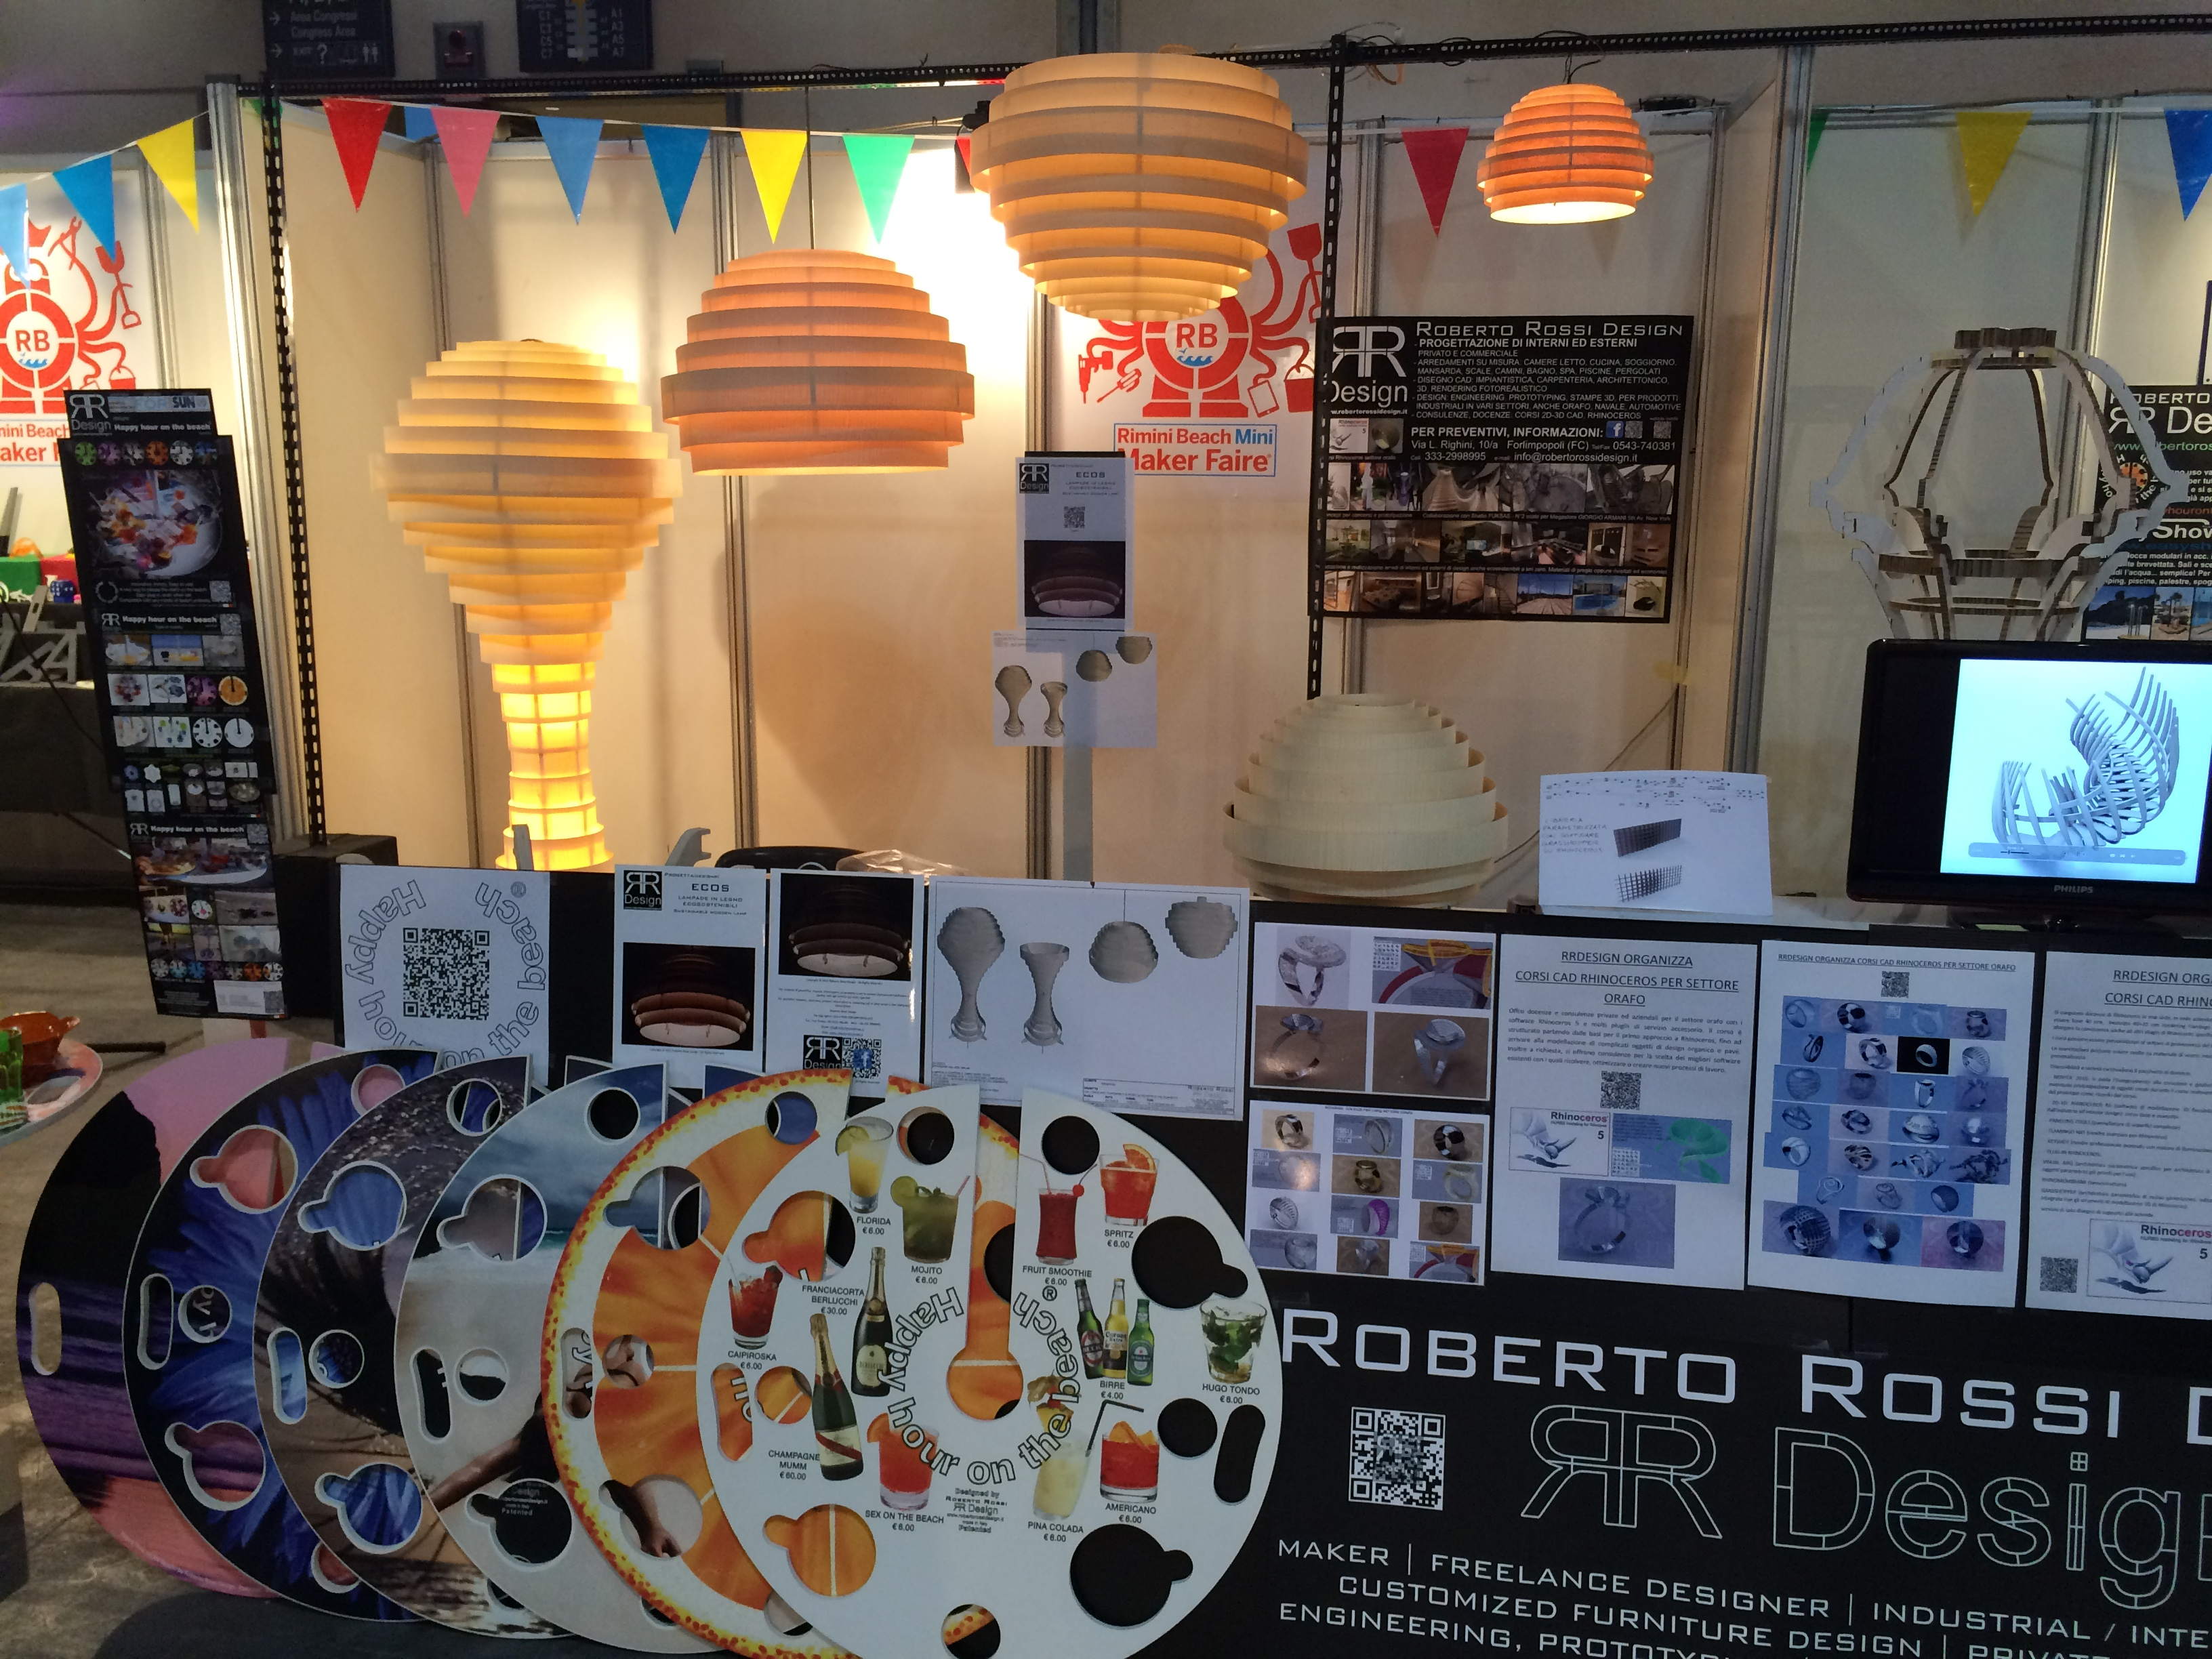 RRDESIGN - MAKER FAIRE DI RIMINI